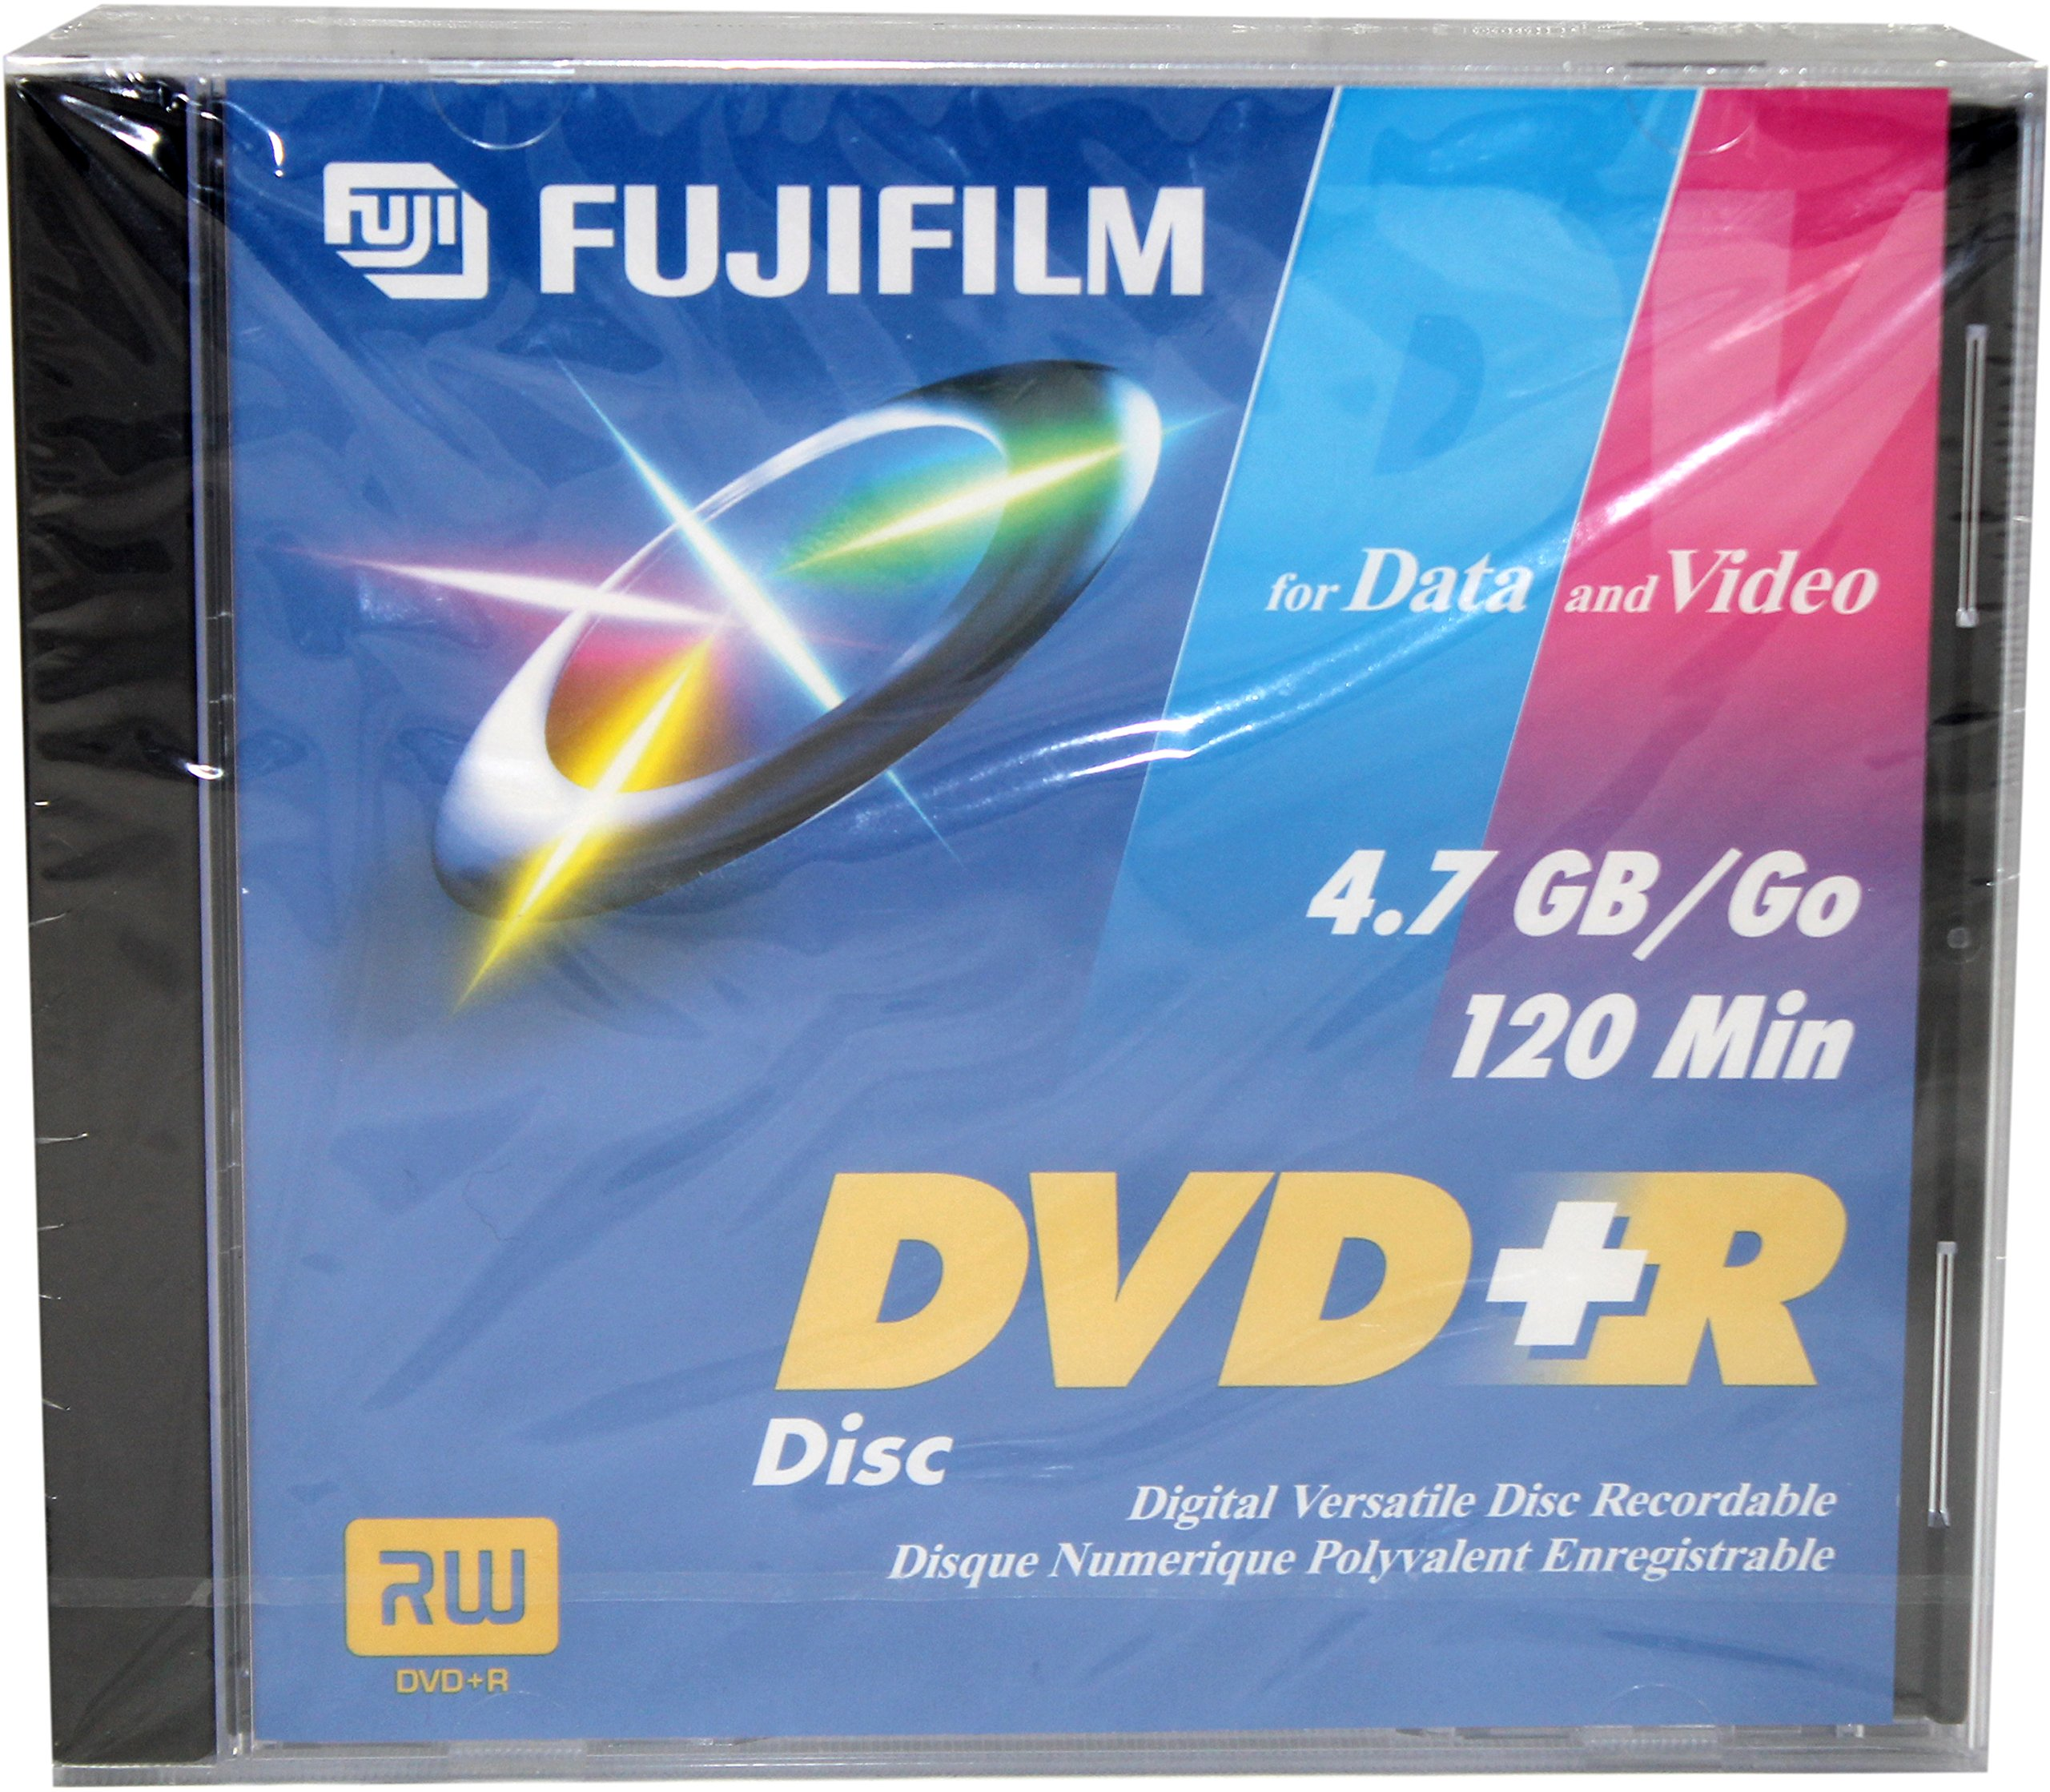 Fuji Dvd+r Dvd+r 4.7gb General Purpose Dvd Disc 5 Pack